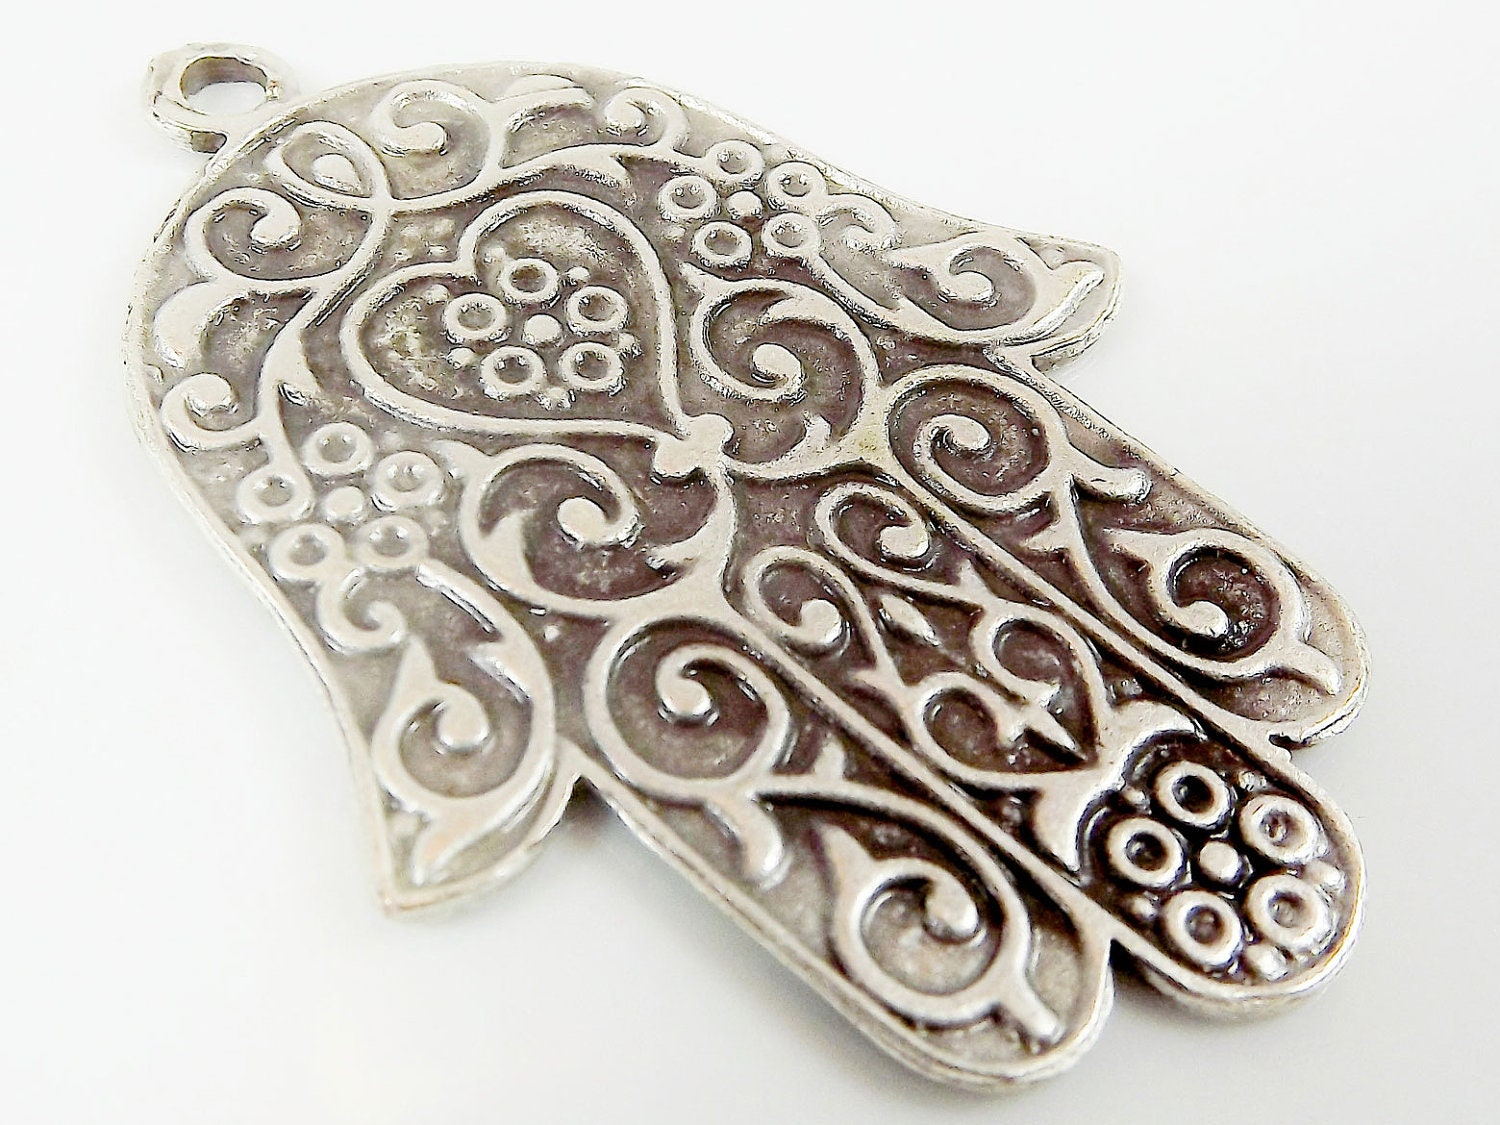 Ornate hamsa hand of fatima pendant charm silver plated zoom mozeypictures Image collections